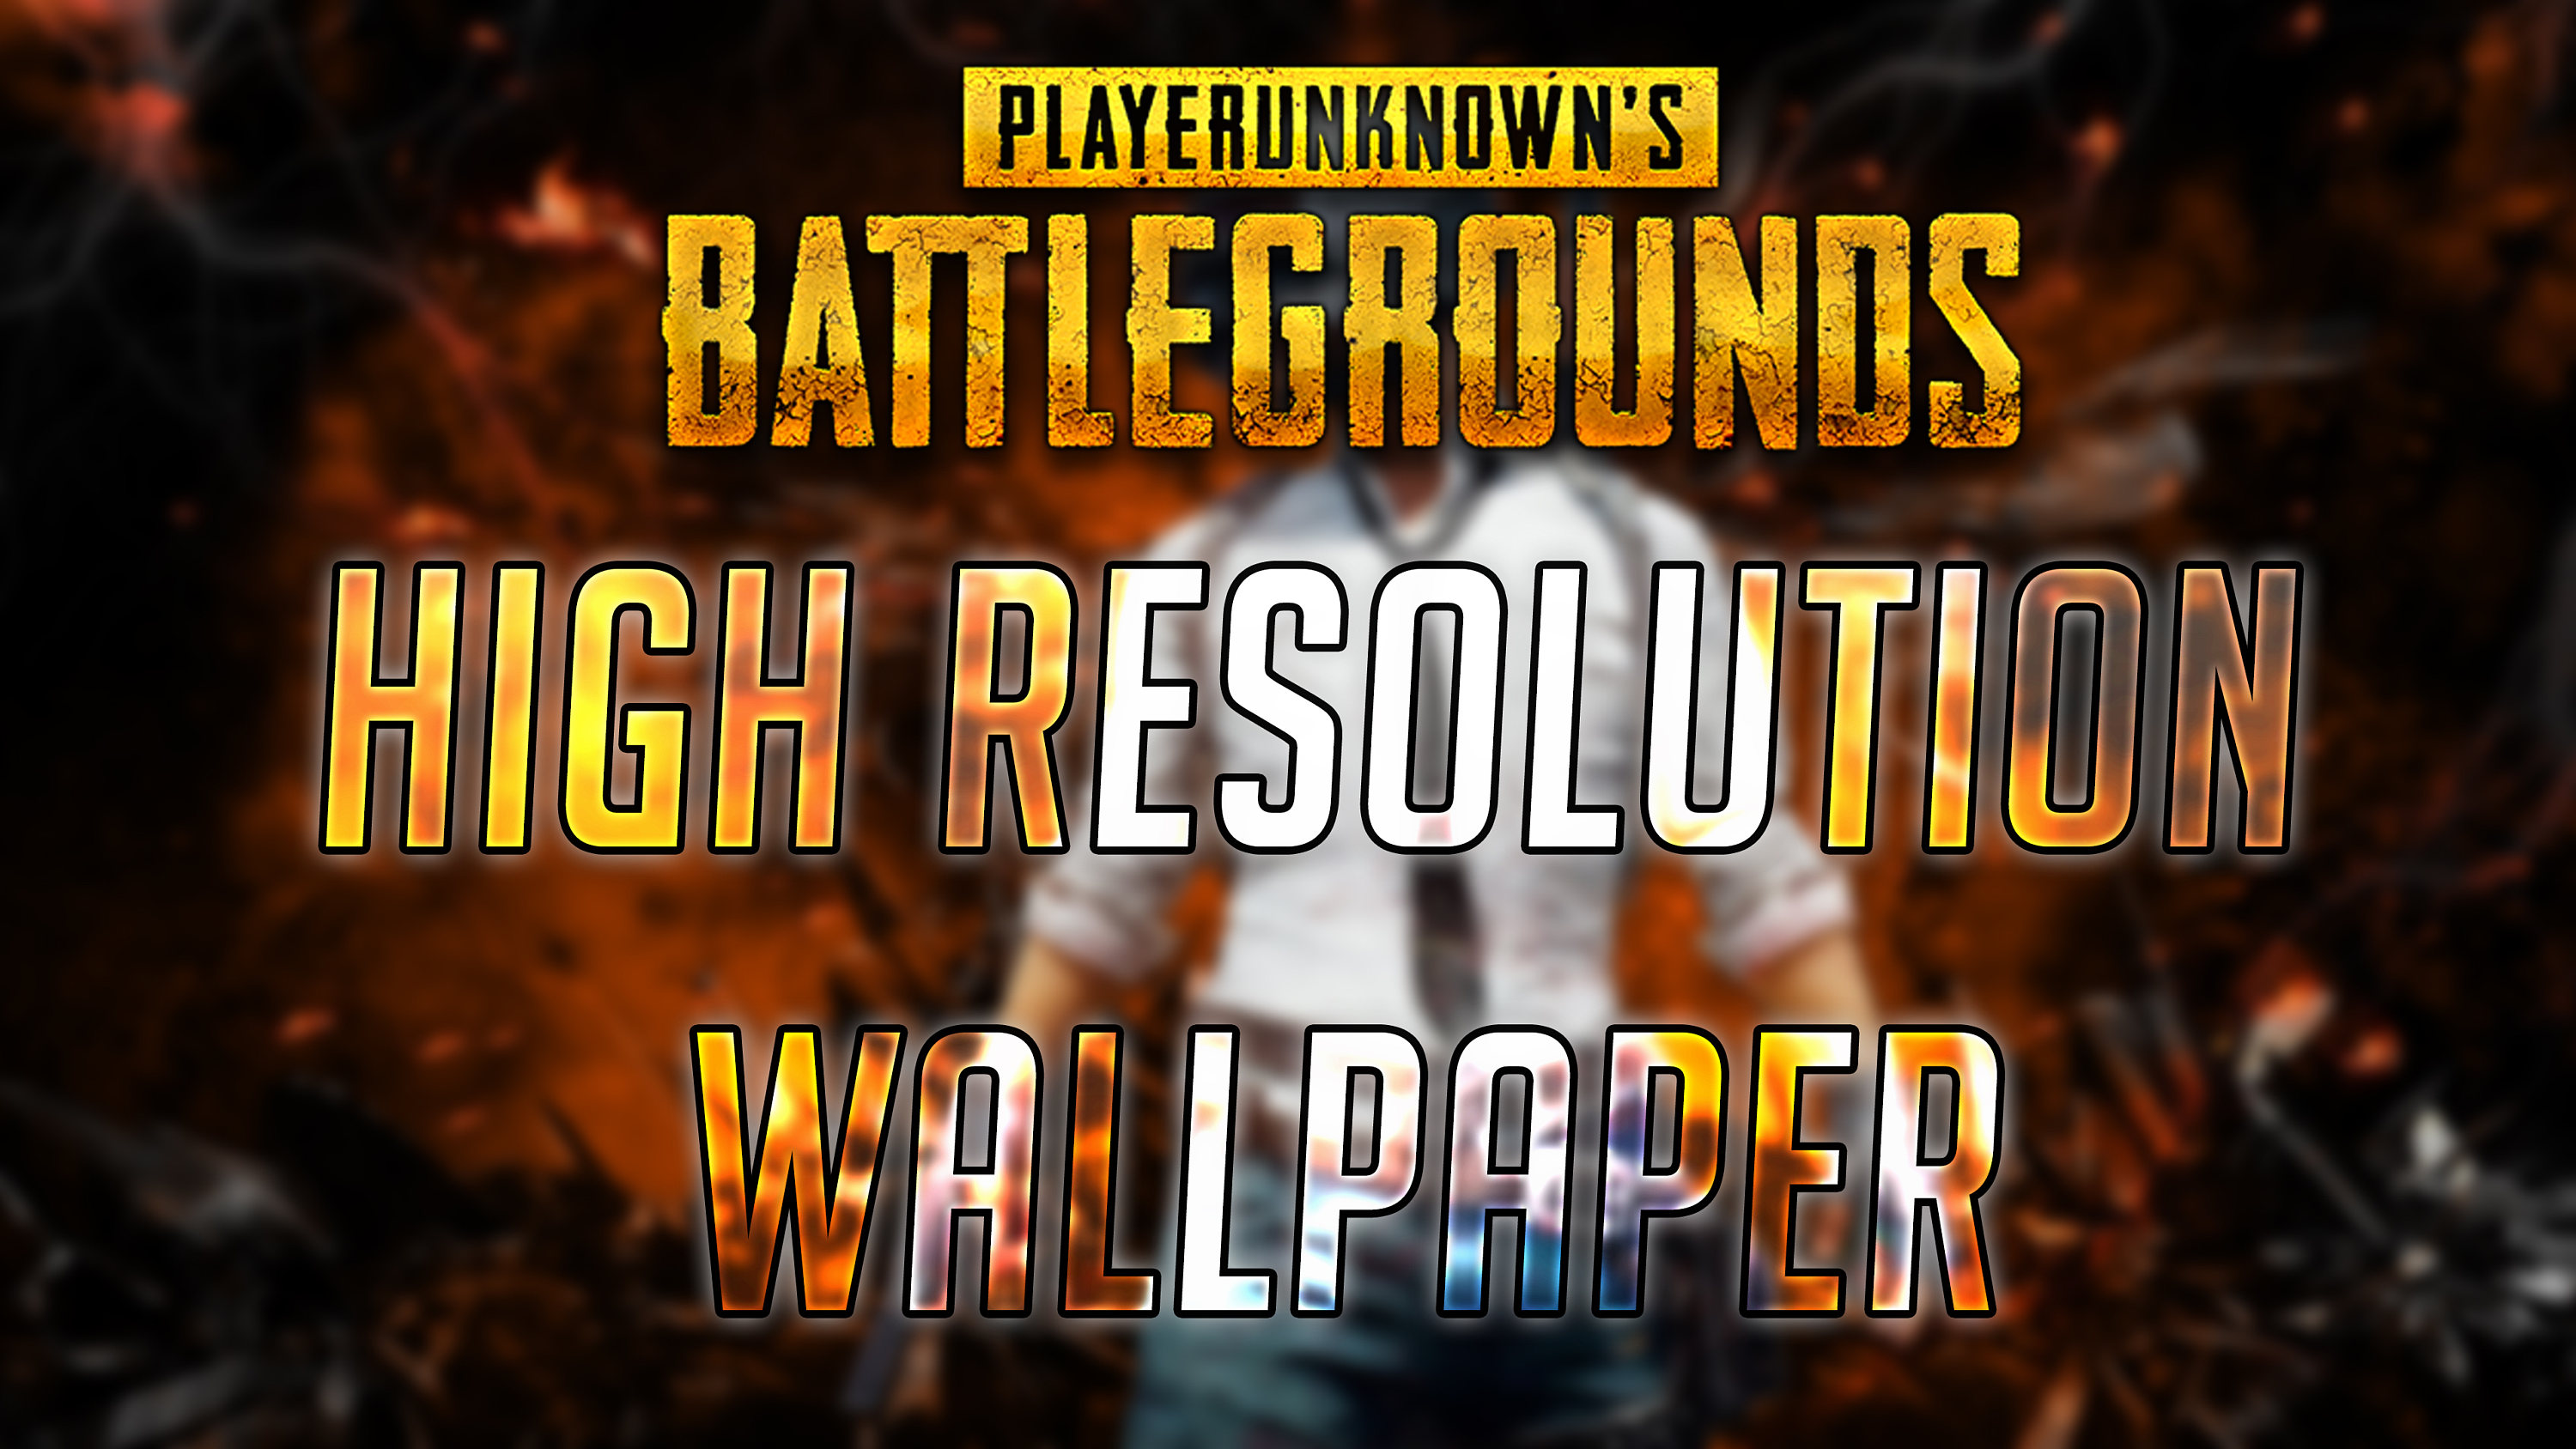 No Pubg Wallpaper: 4K HD PUBG Wallpaper Player Unknowns Battle Grounds Gaming